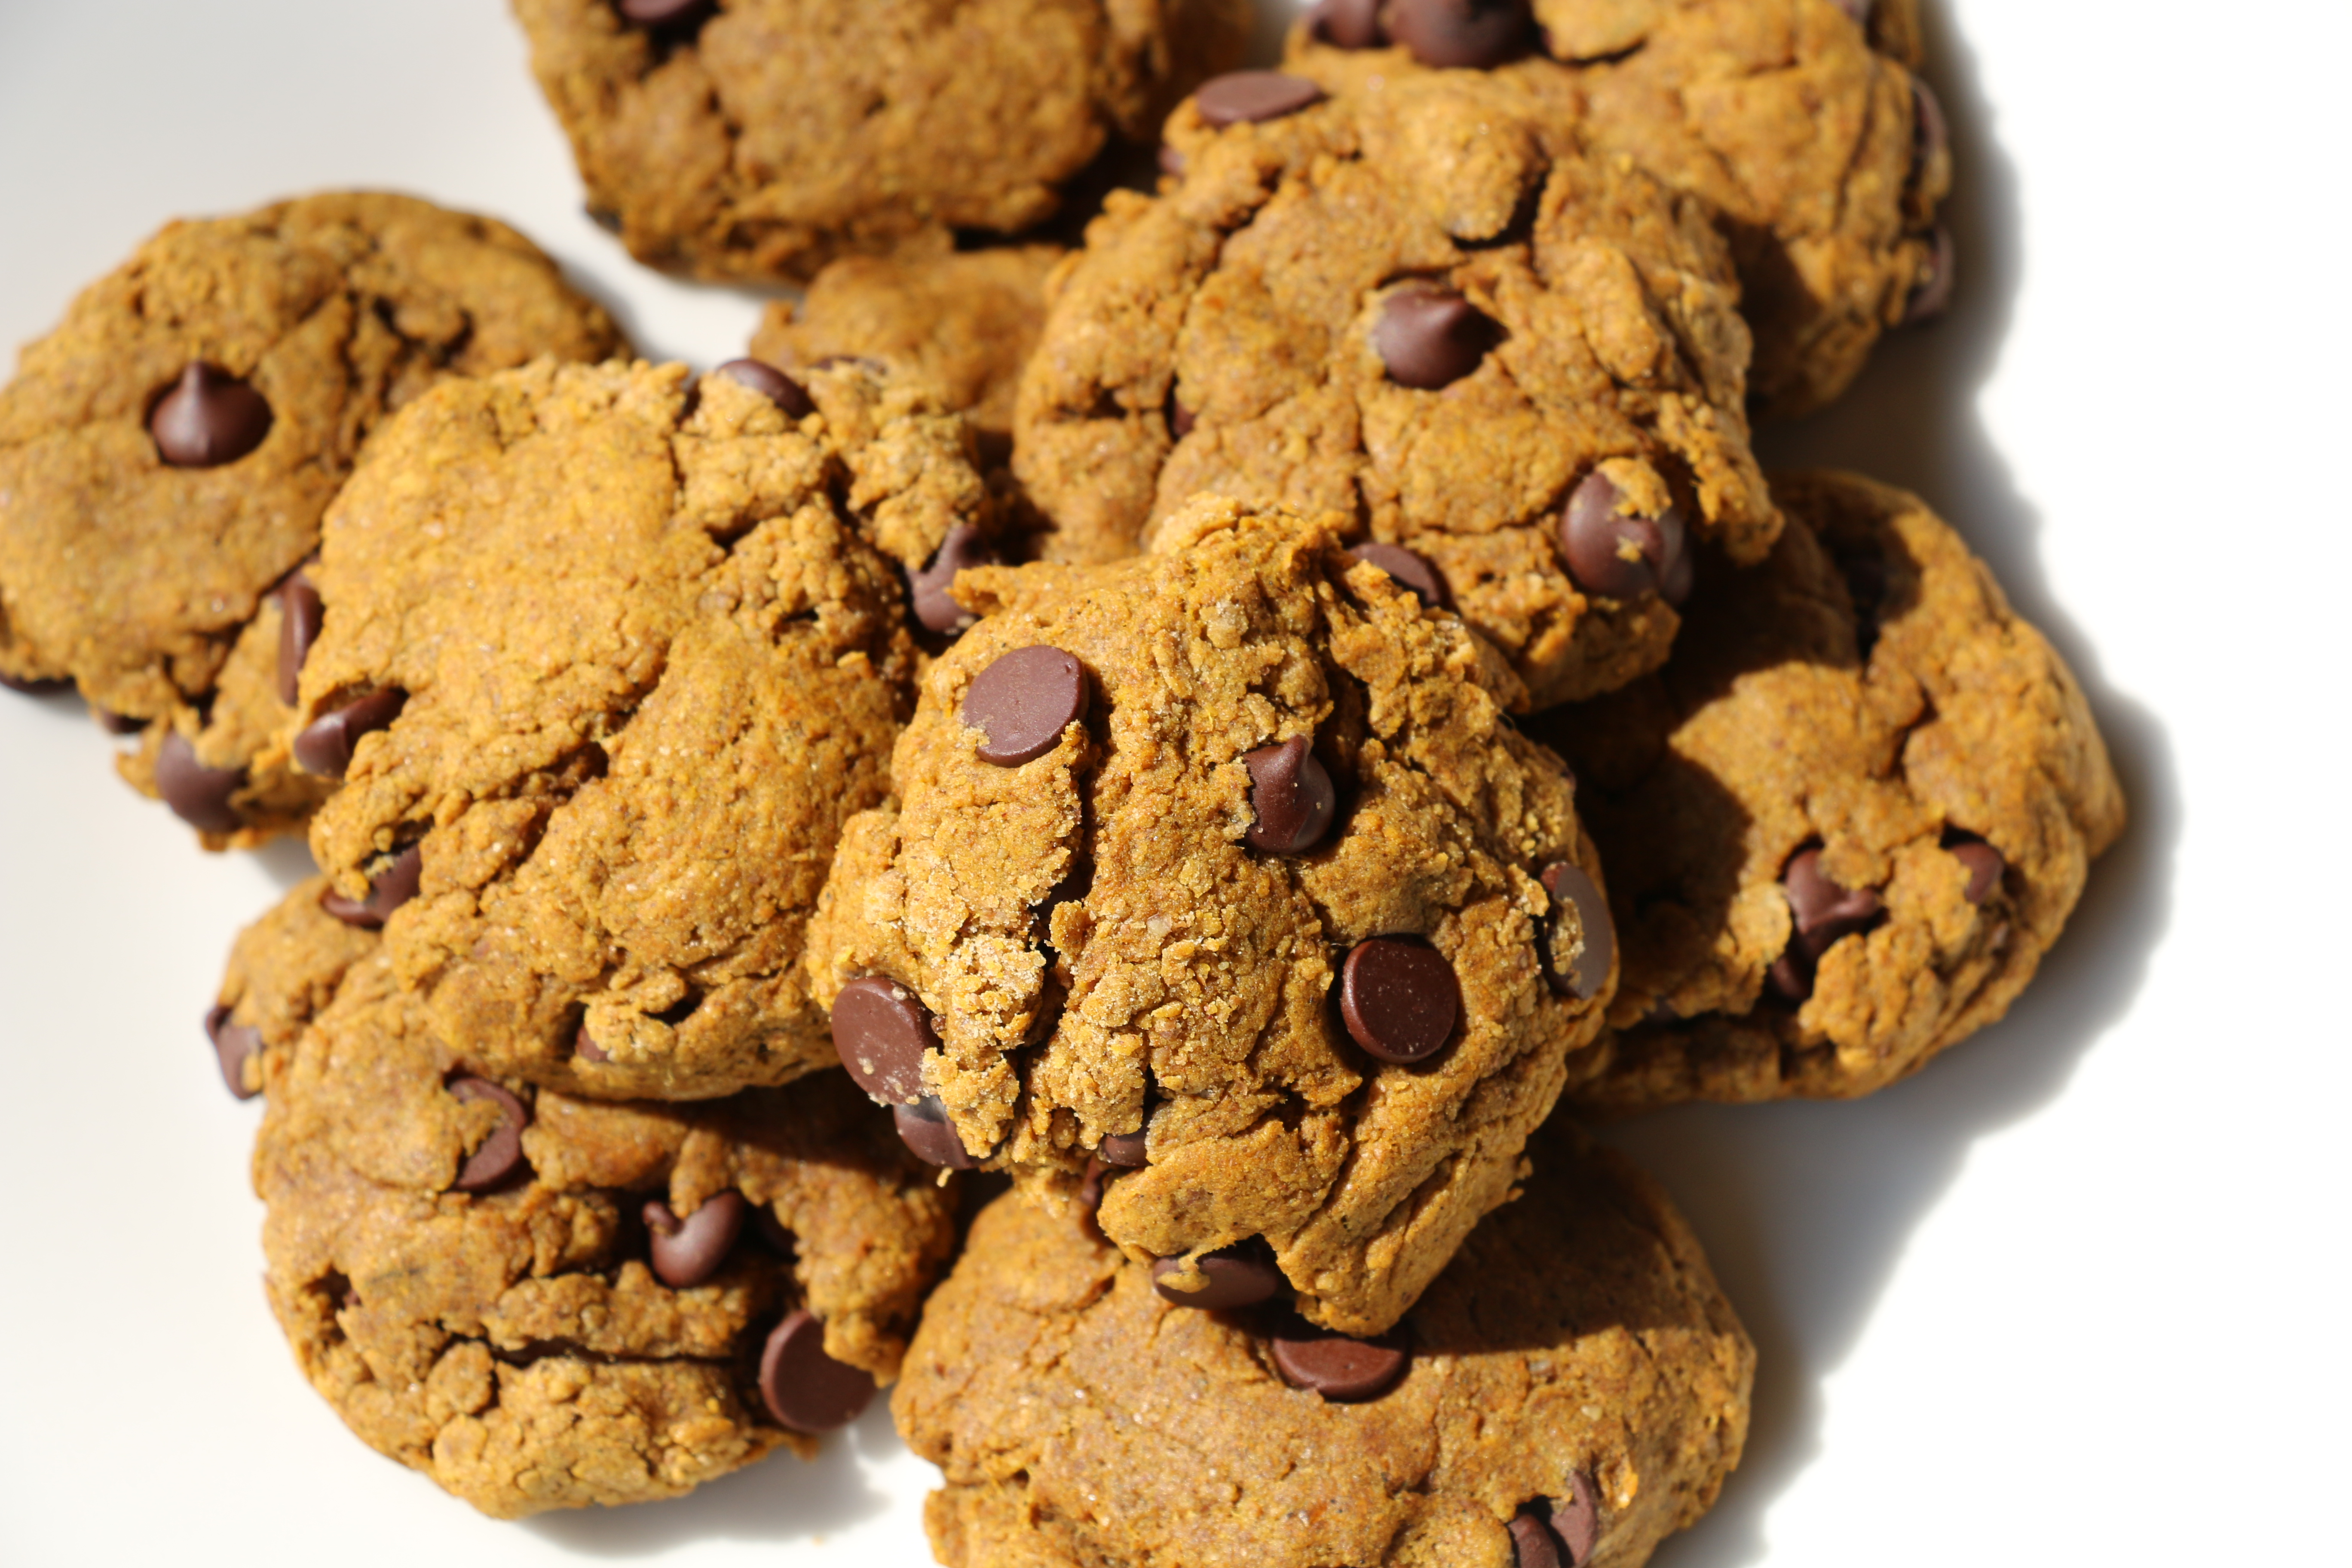 Vegan Sugar Free Chocolate Chip Cookies